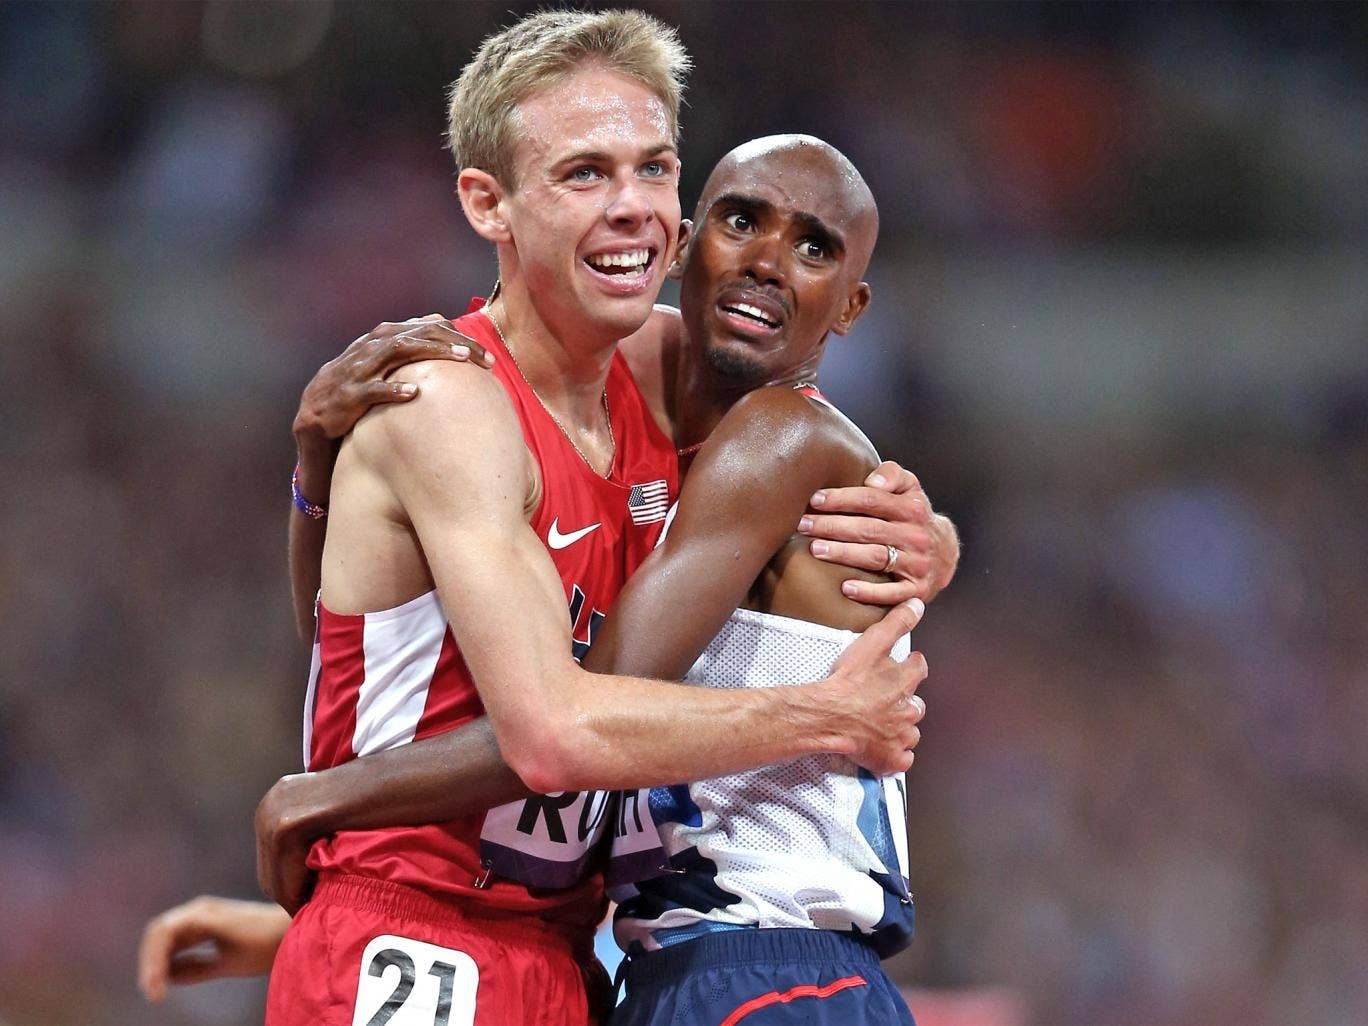 Rupp and Farah after the Olympic Men's 10,000m Final